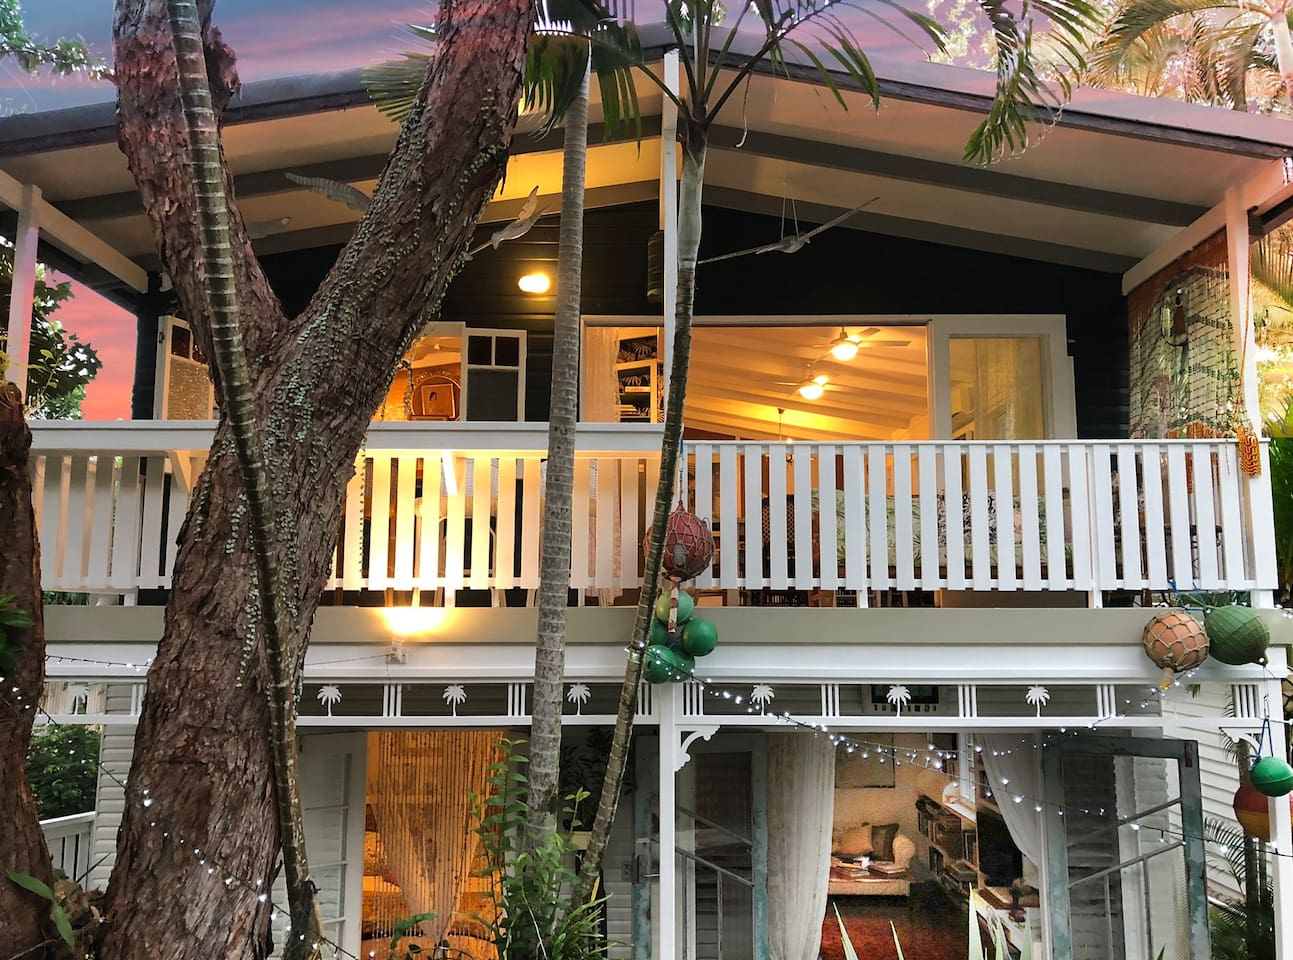 The Artists' Treehouse, celebrating tropical living